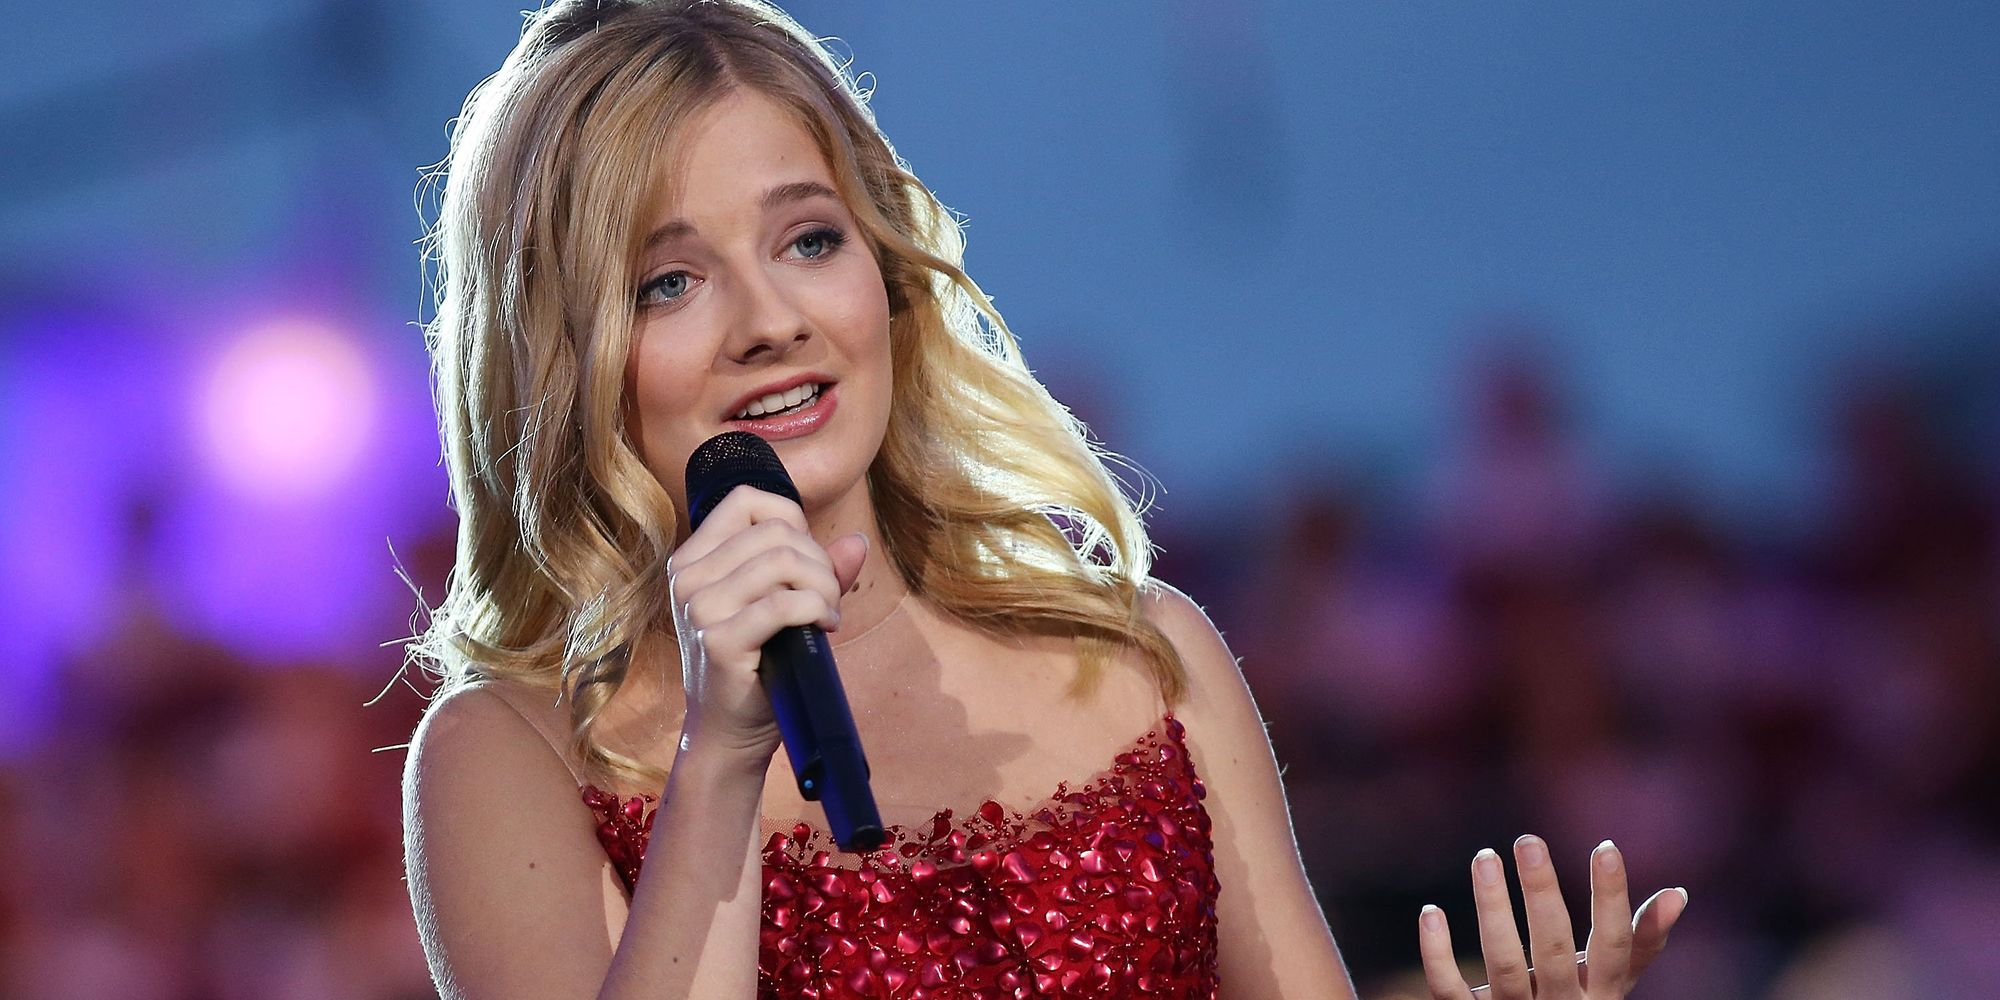 Donald Trump Makes Dubious Claim About Inauguration Singer Jackie Evancho